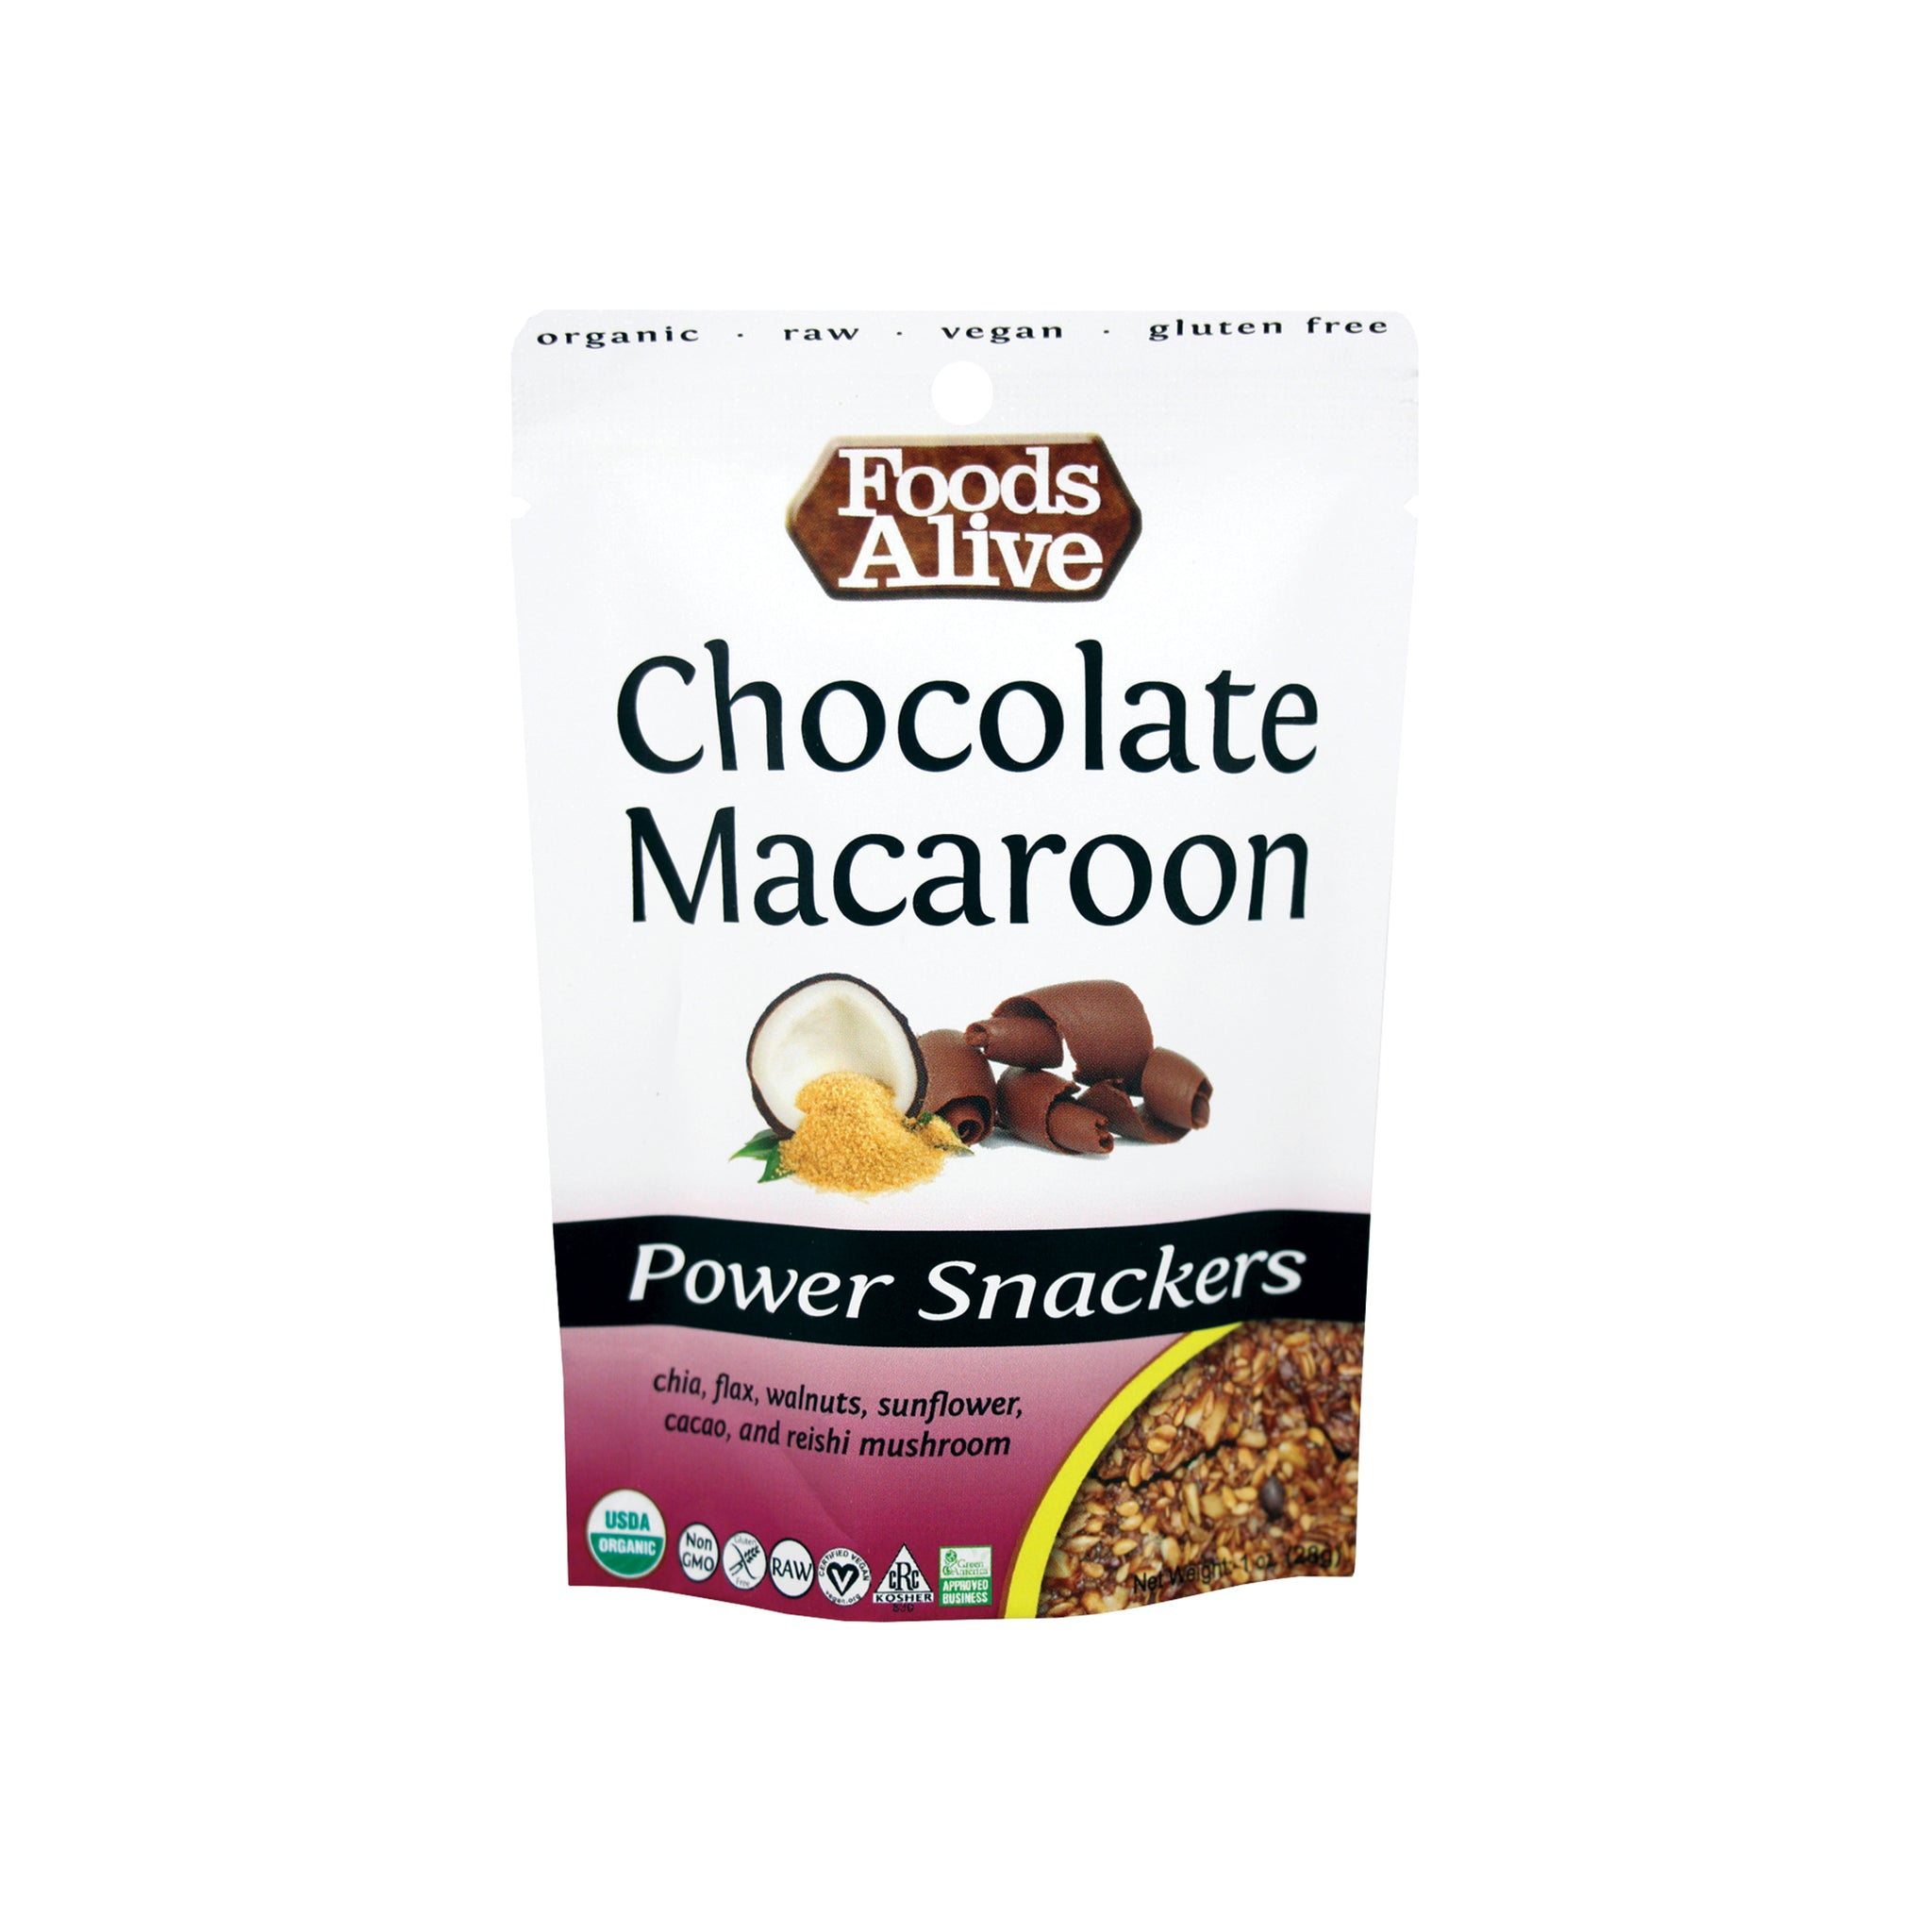 Foods Alive - Organic Power Crackers - Chocolate Macaroon - 1 oz